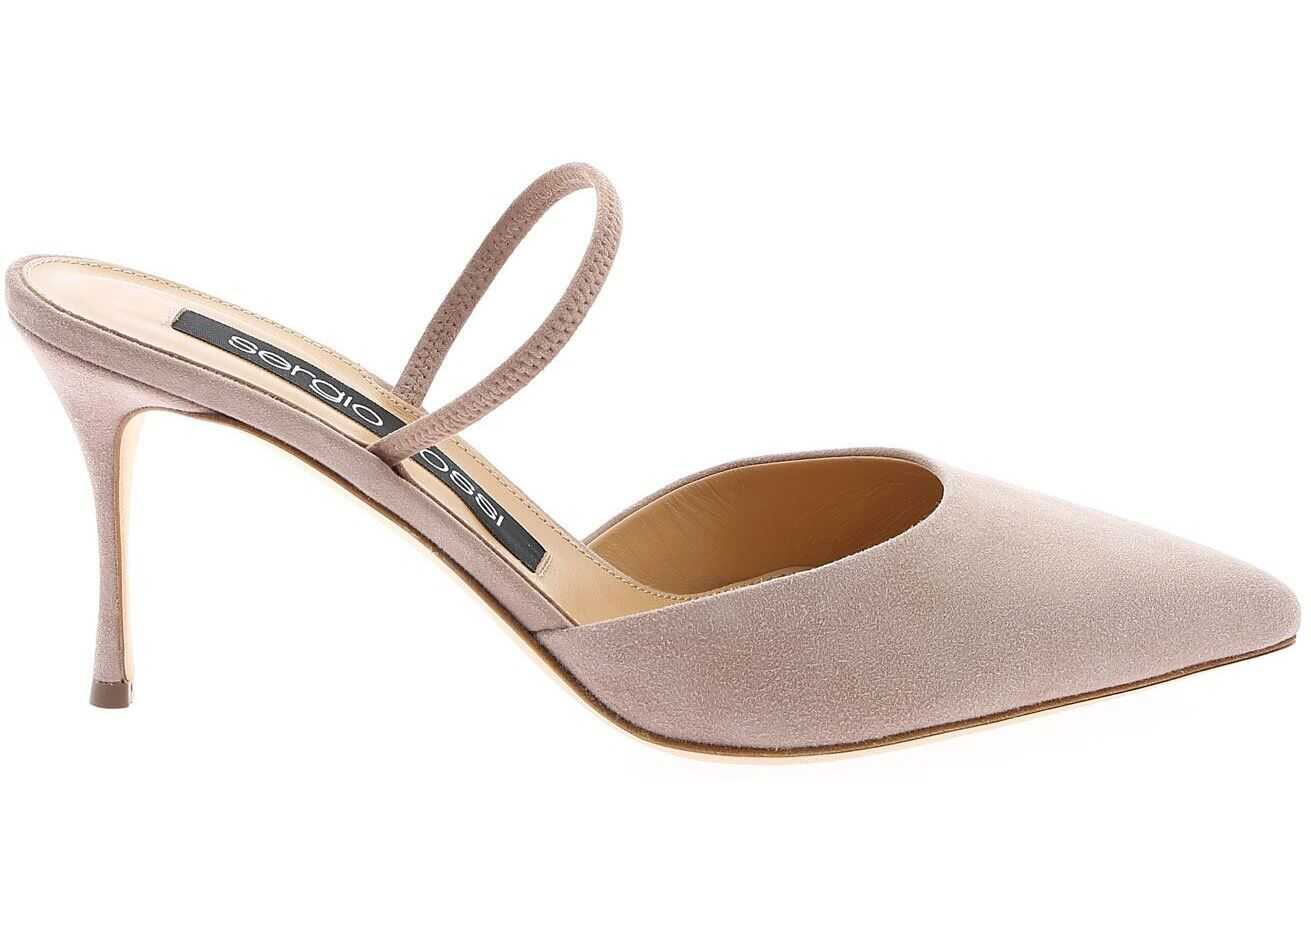 Suede Pointed Mules In Powder Pink Color thumbnail